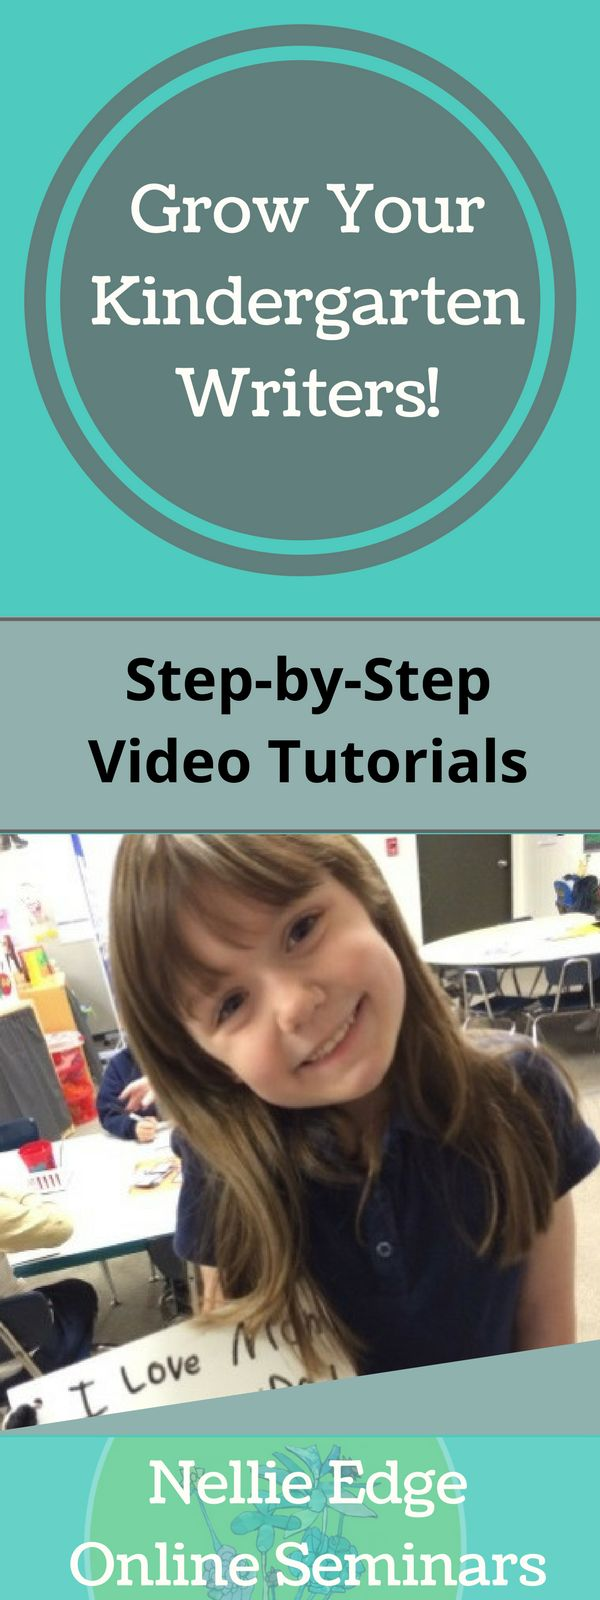 Grow Your Kindergarten Writers with Nellie Edge Online Seminars. Earn PD credits. Step-by-step video tutorials right away for your classroom for awesome results. This comprehensive writing program includes writing workshop activities, prompts, editable parent letters, authentic sight word work. Inspire your students to love learning. Proven strategies https://onlineseminars.nellieedge.com/ http://www.nellieedge.com/read-sing.htm#program | printables + sight word work + prompts + writing…